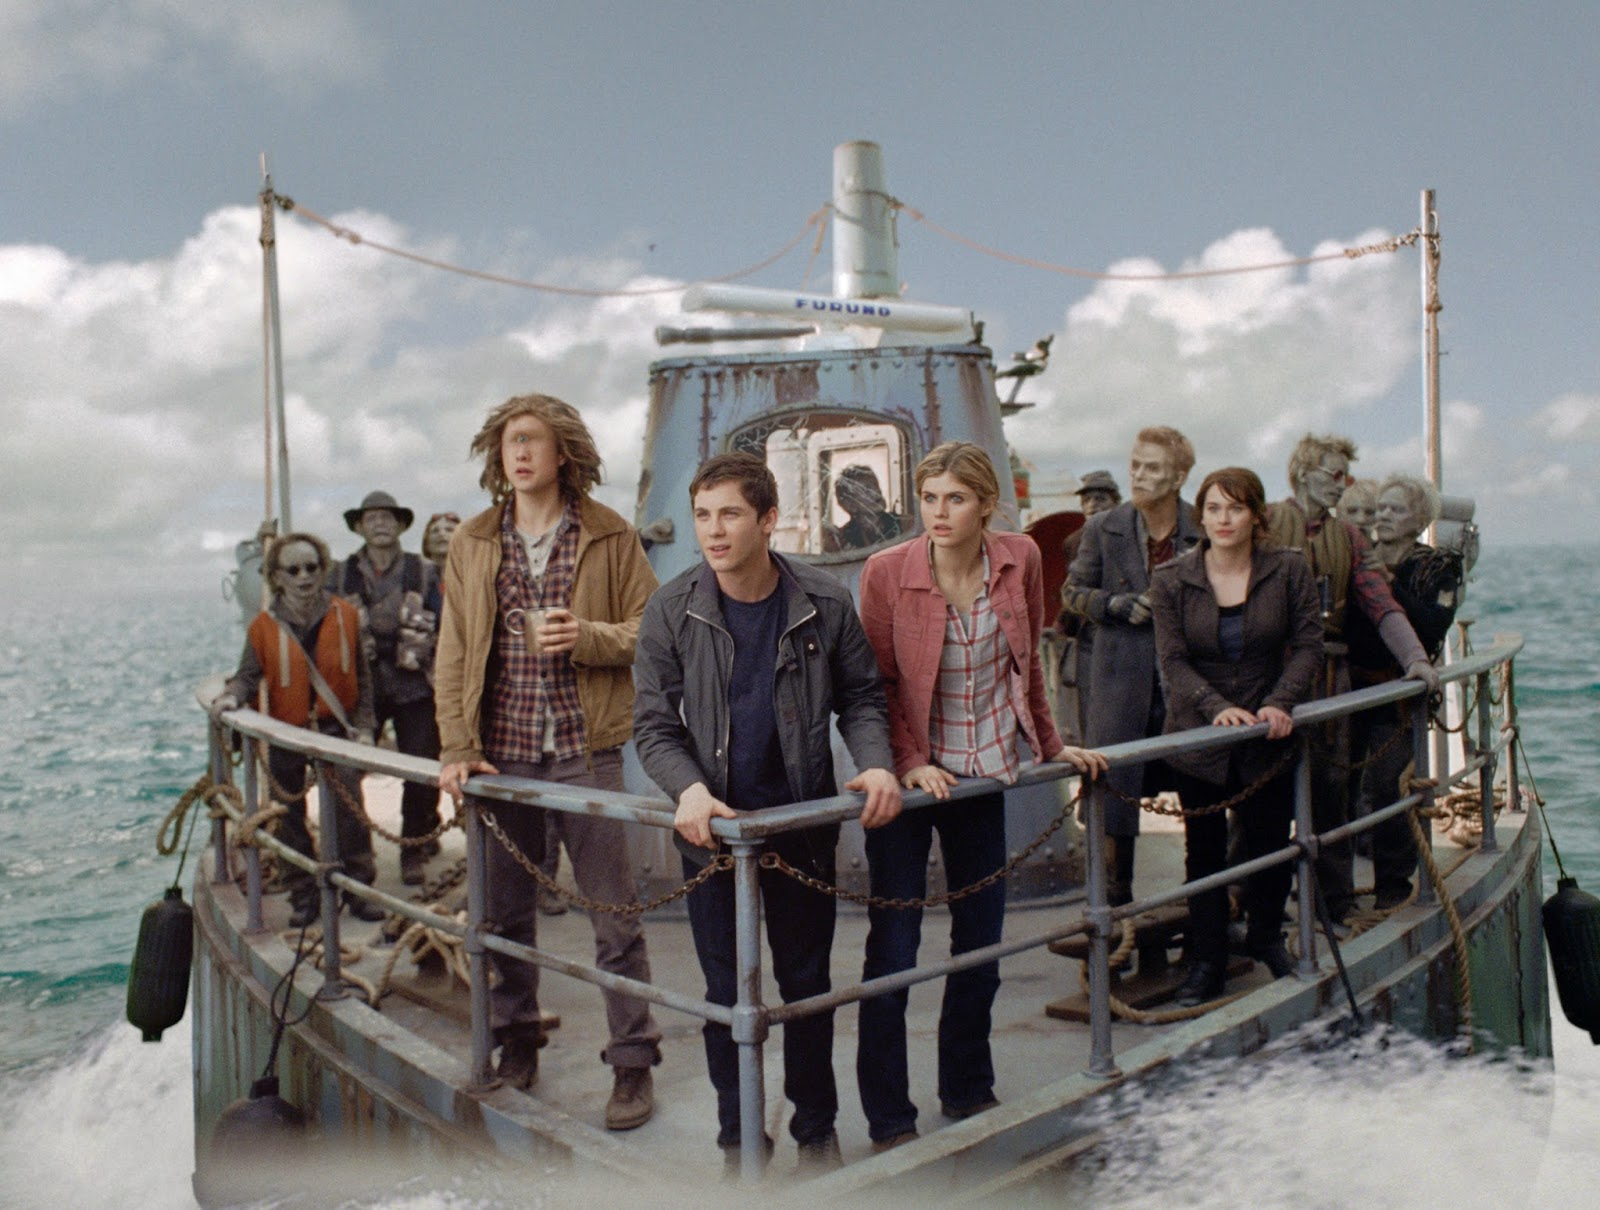 Percy Jackson: Sea of Monsters movie review, rating, trailer and photos.